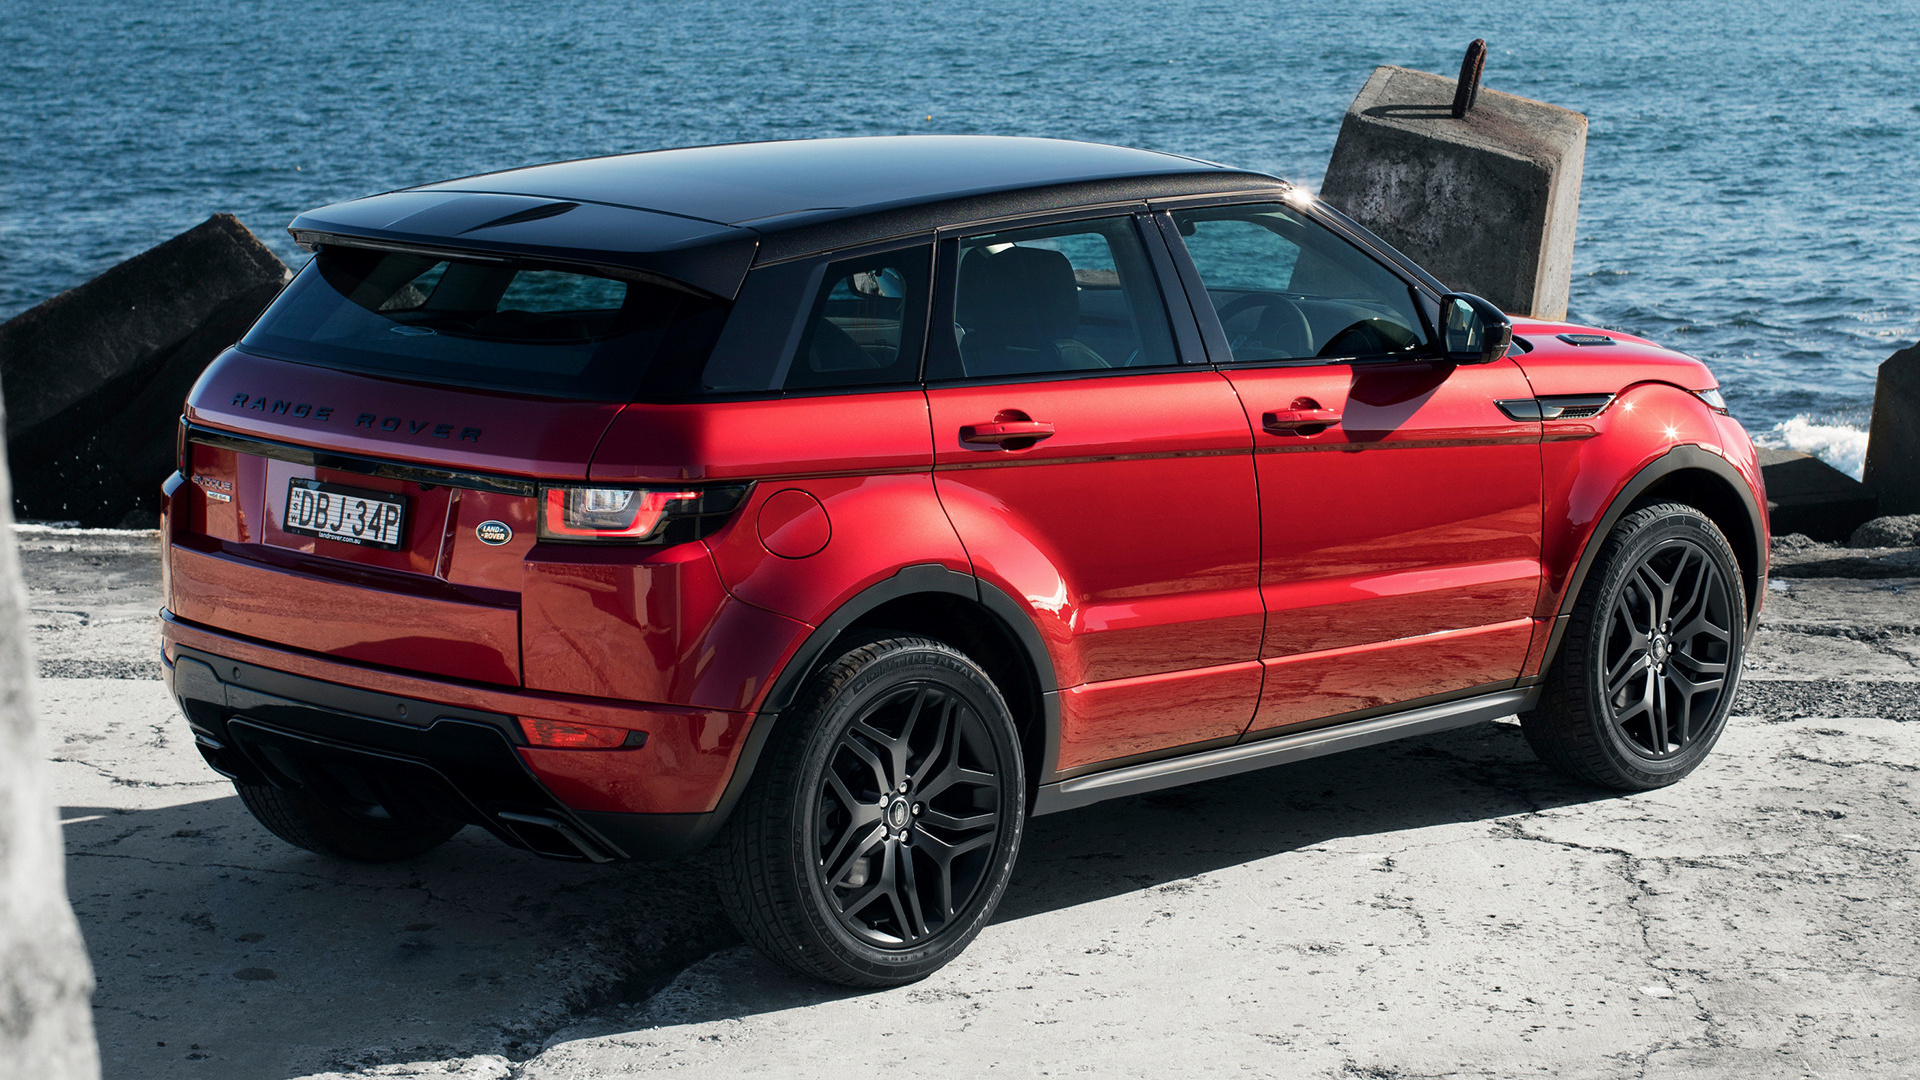 Range Rover Evoque Convertible >> 2015 Range Rover Evoque HSE Dynamic (AU) - Wallpapers and ...